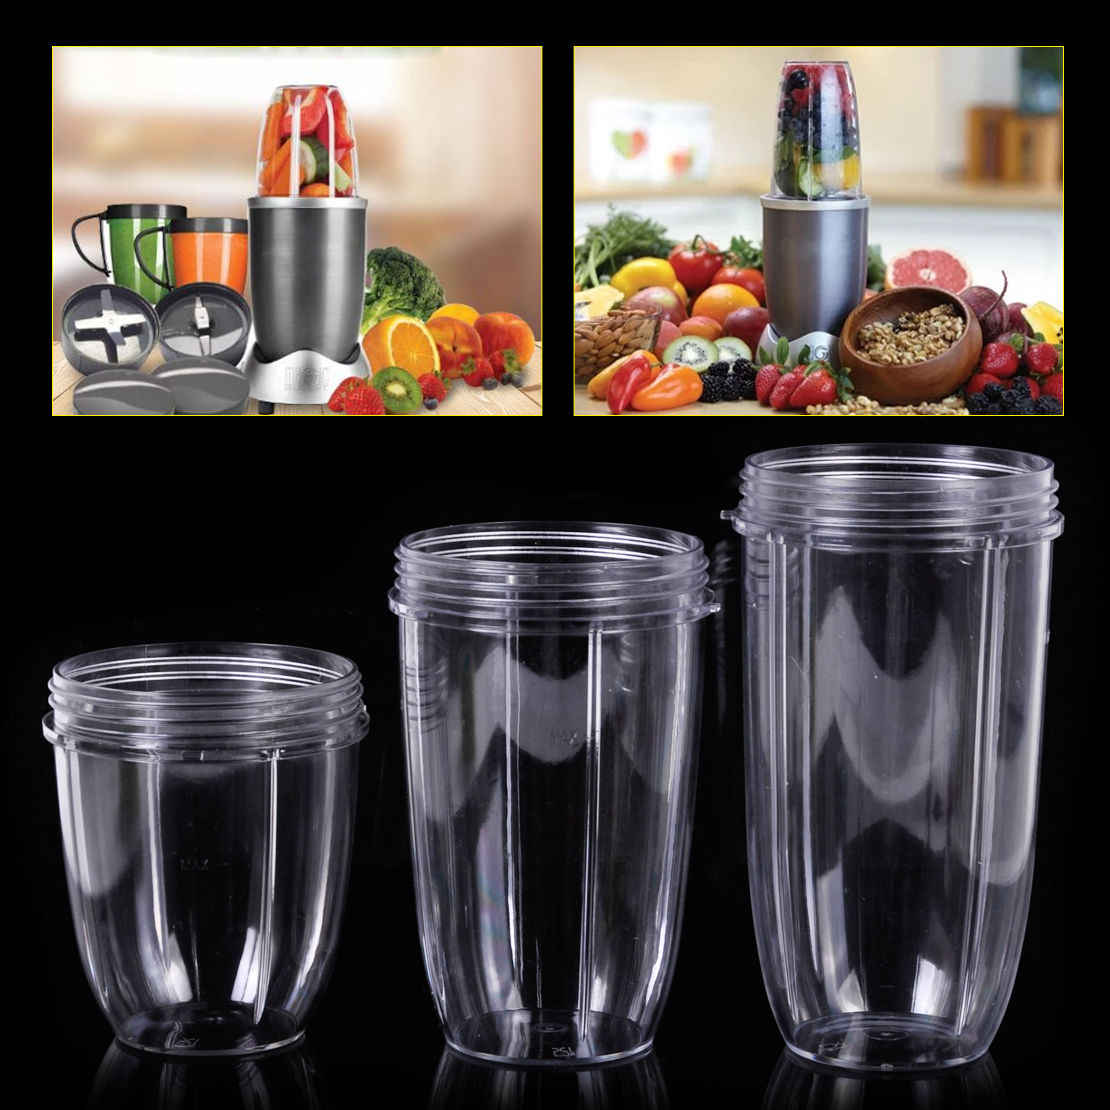 Juicer Cup Mug Clear Replacement For NutriBullet Nutri Bullet Juicer 18/24/32OZ 2018 New Arrival